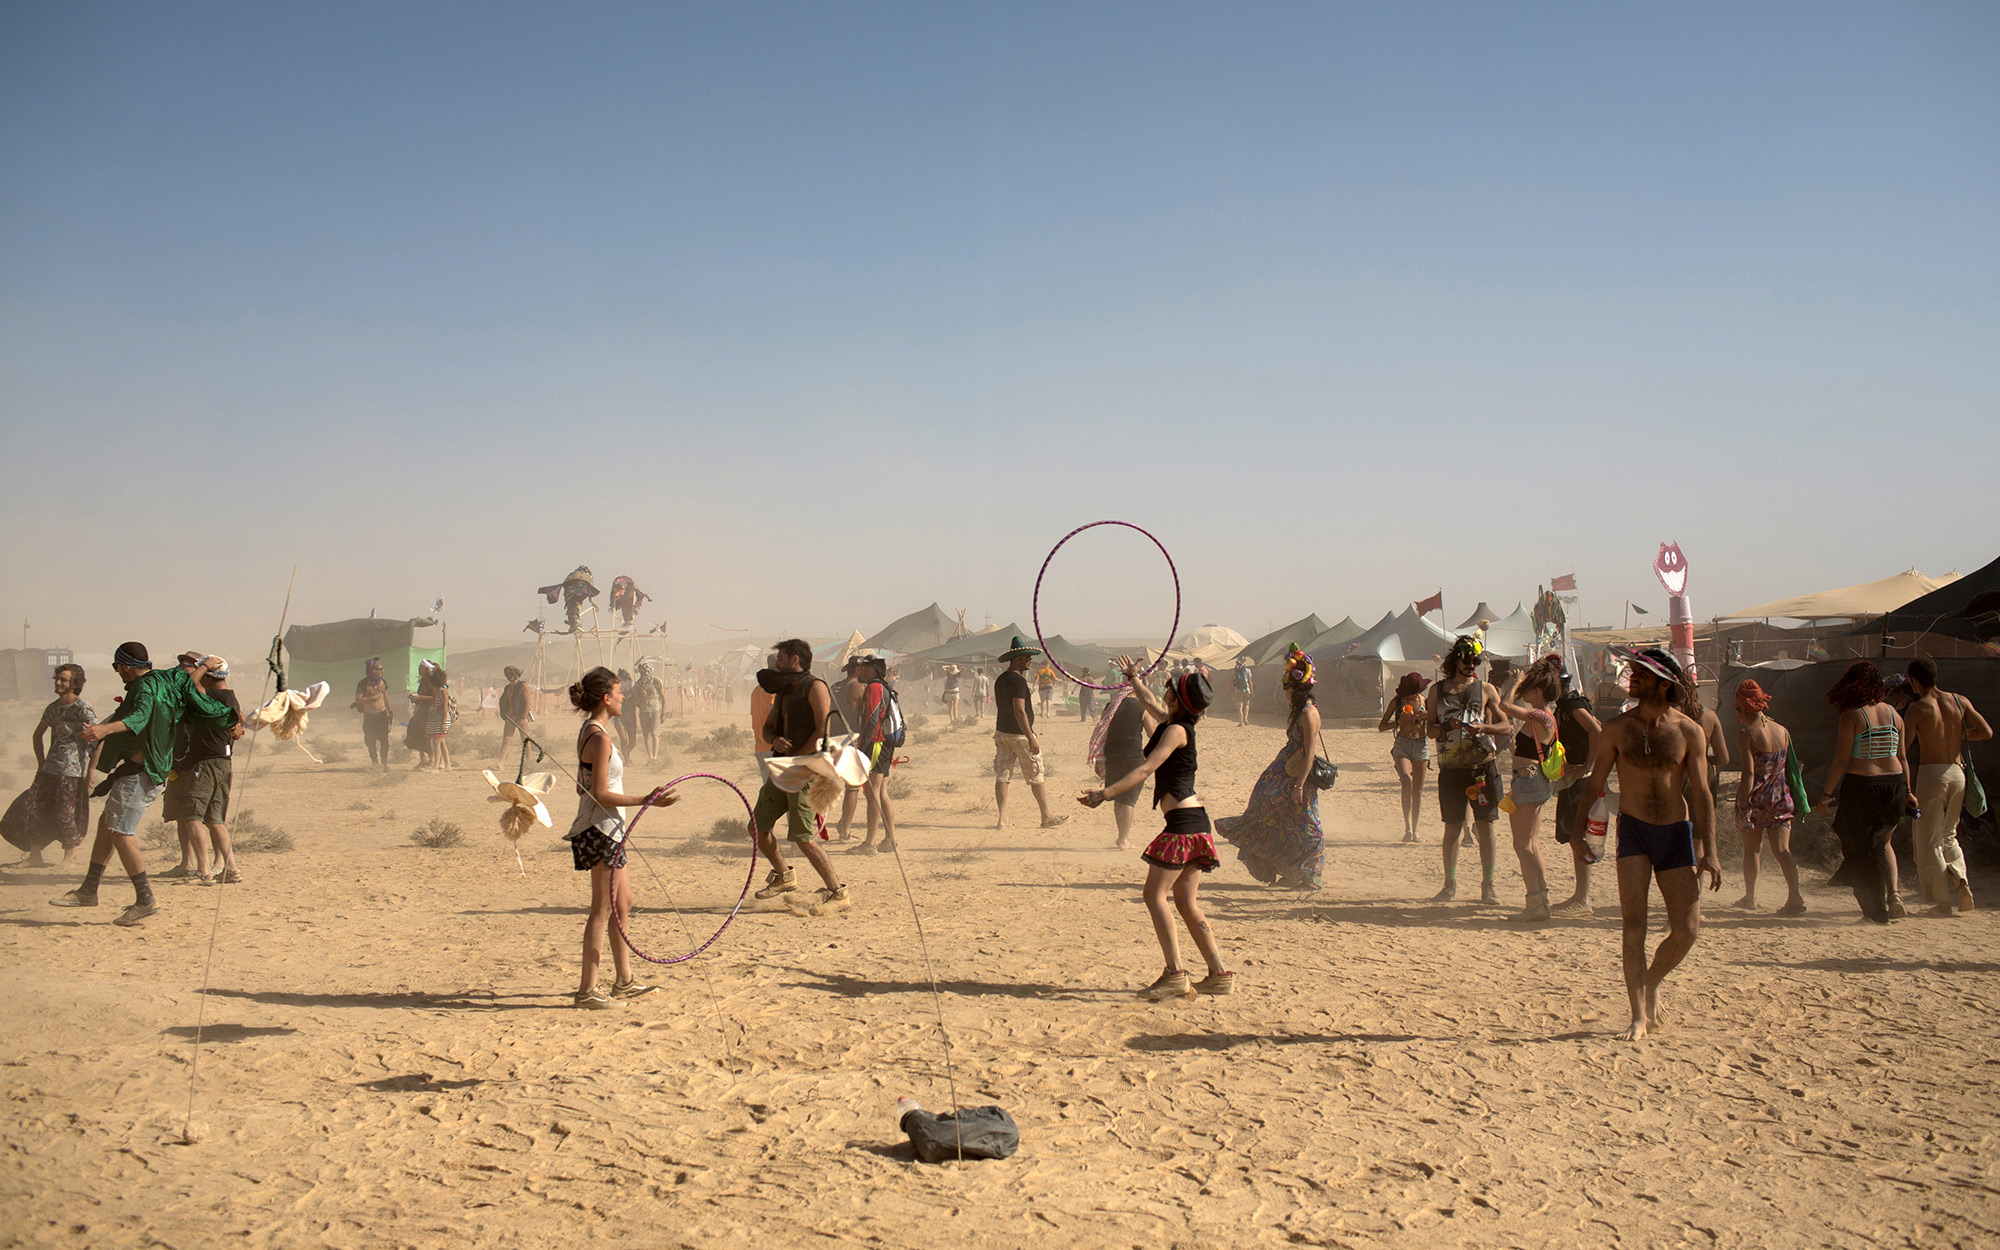 How to Work at Burning Man